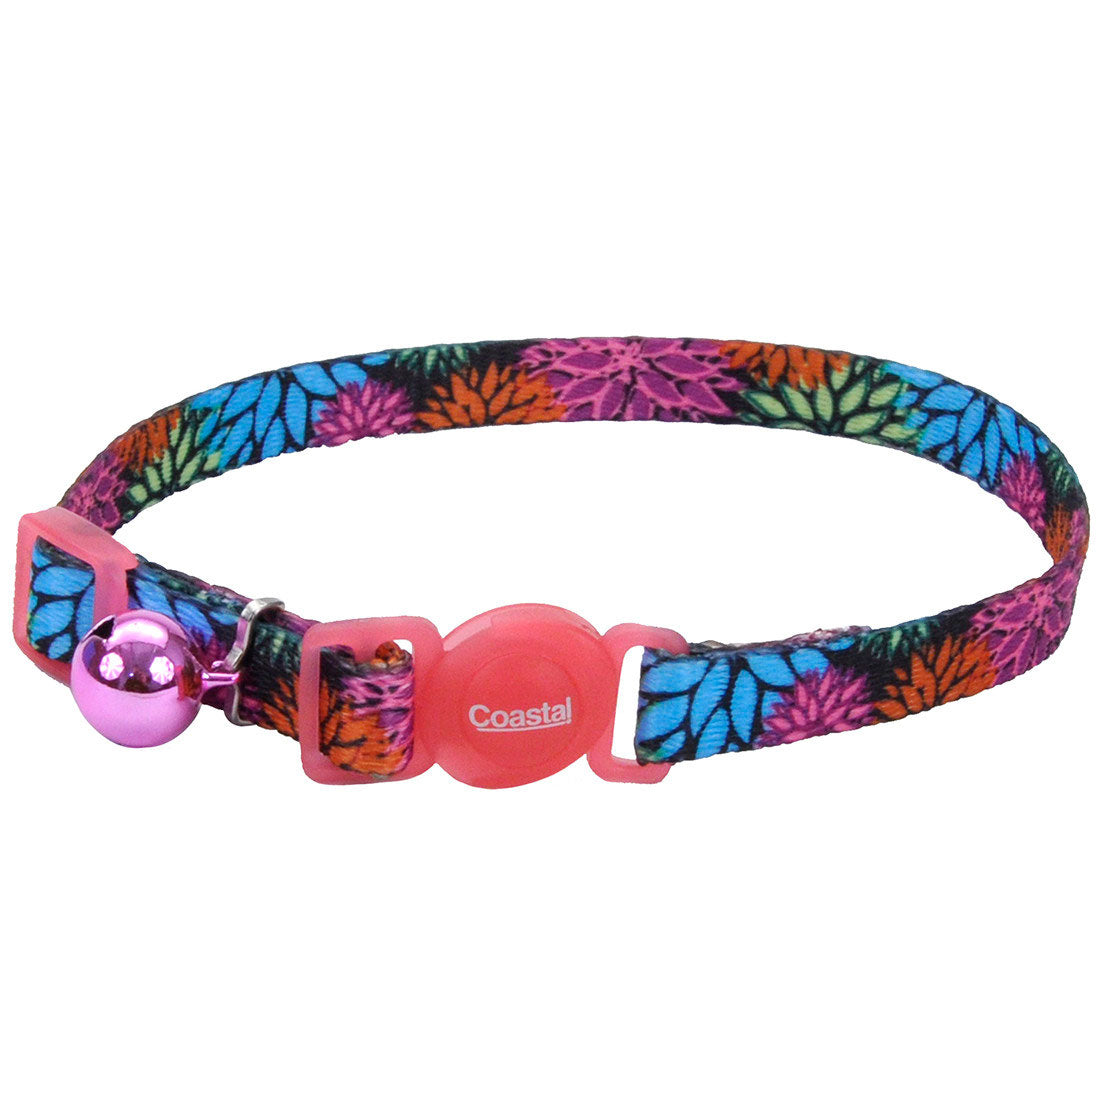 Safe Cat Fashion | Breakaway Cat Collar